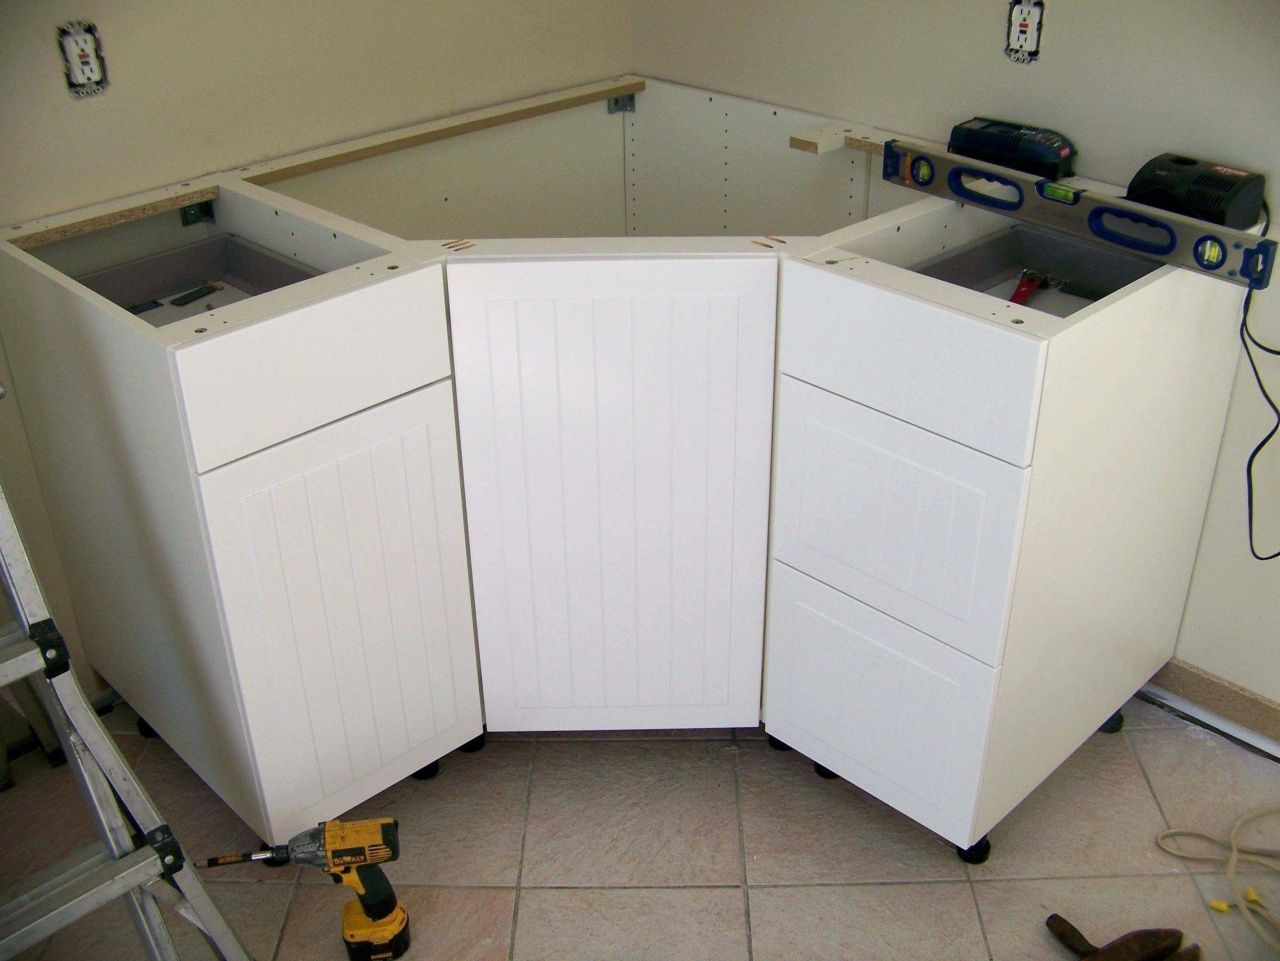 Kitchen Sink Size For 30 Inch Cabinet In 2020 With Images